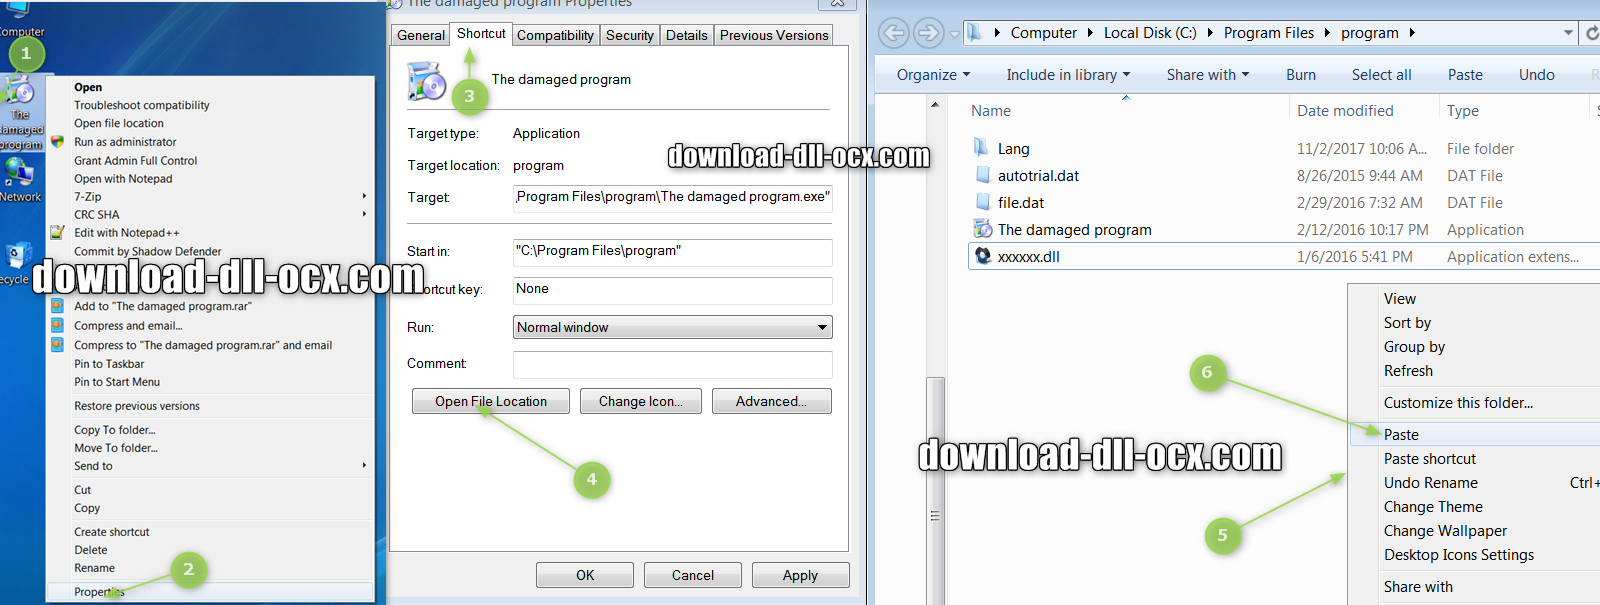 how to install Agt0413.dll file? for fix missing